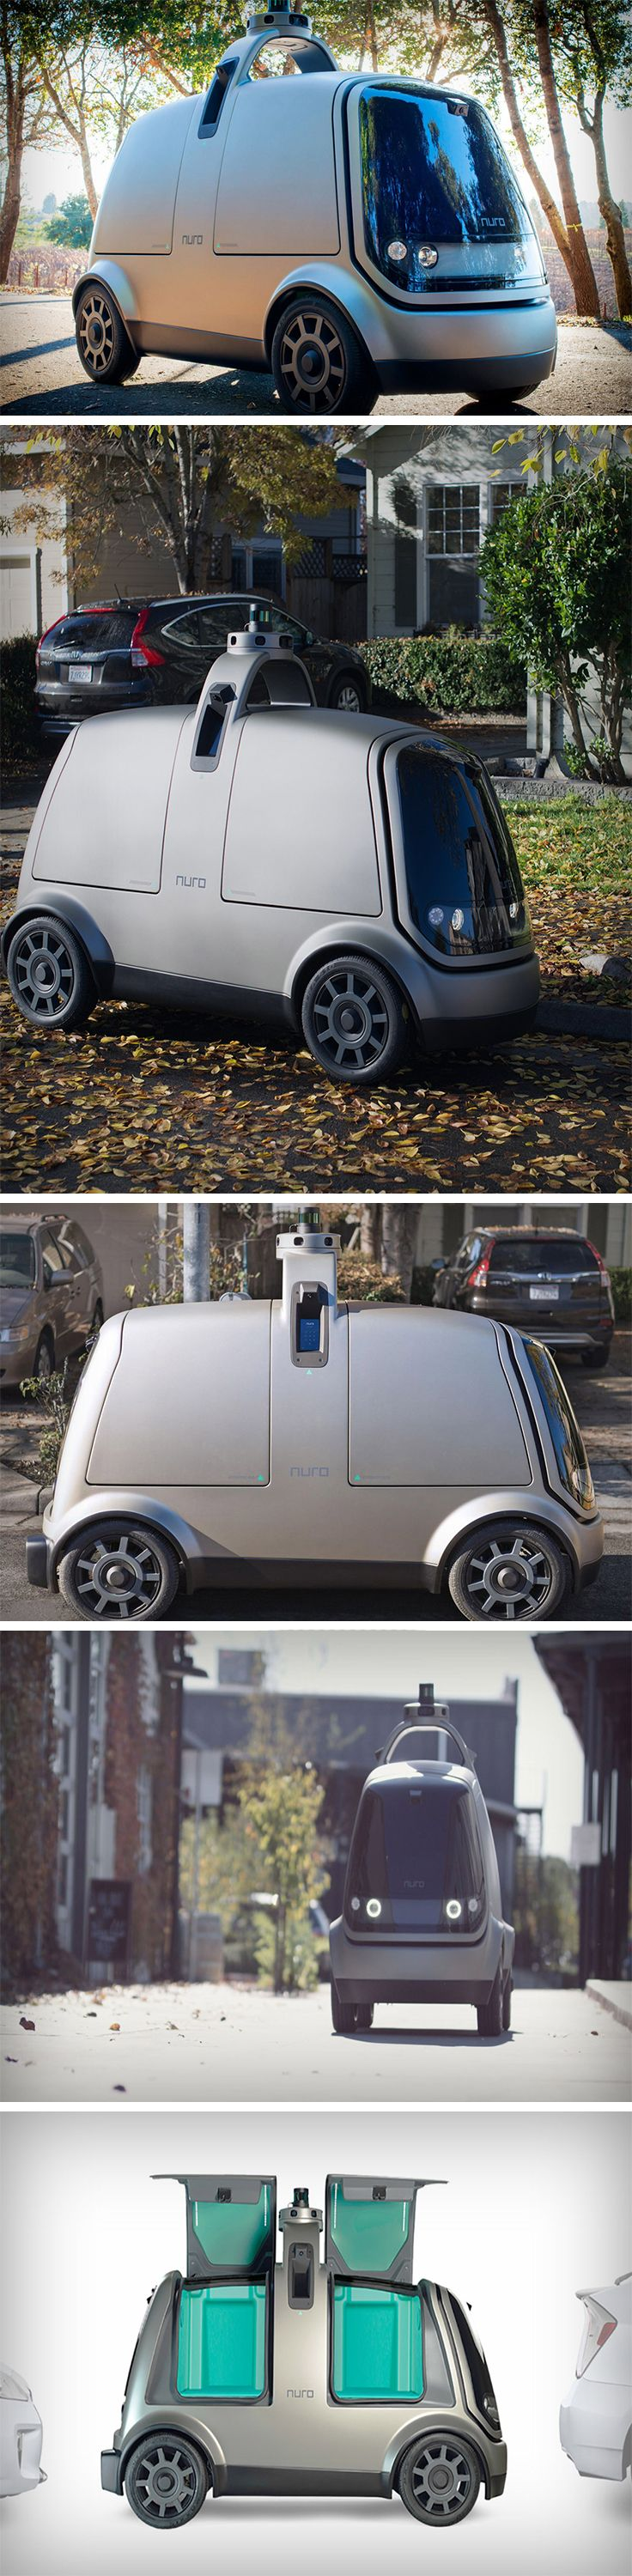 Two Google engineers have risen to the top with their interesting spin on autonomous transportation in the form of Nuro. Focused on deliveries, Nuro delivers explicitly the kind that is low-speed, local, and last-mile: groceries, laundry, and take-out orders. Everything you need that's reliable, short distance and easily accessible right?